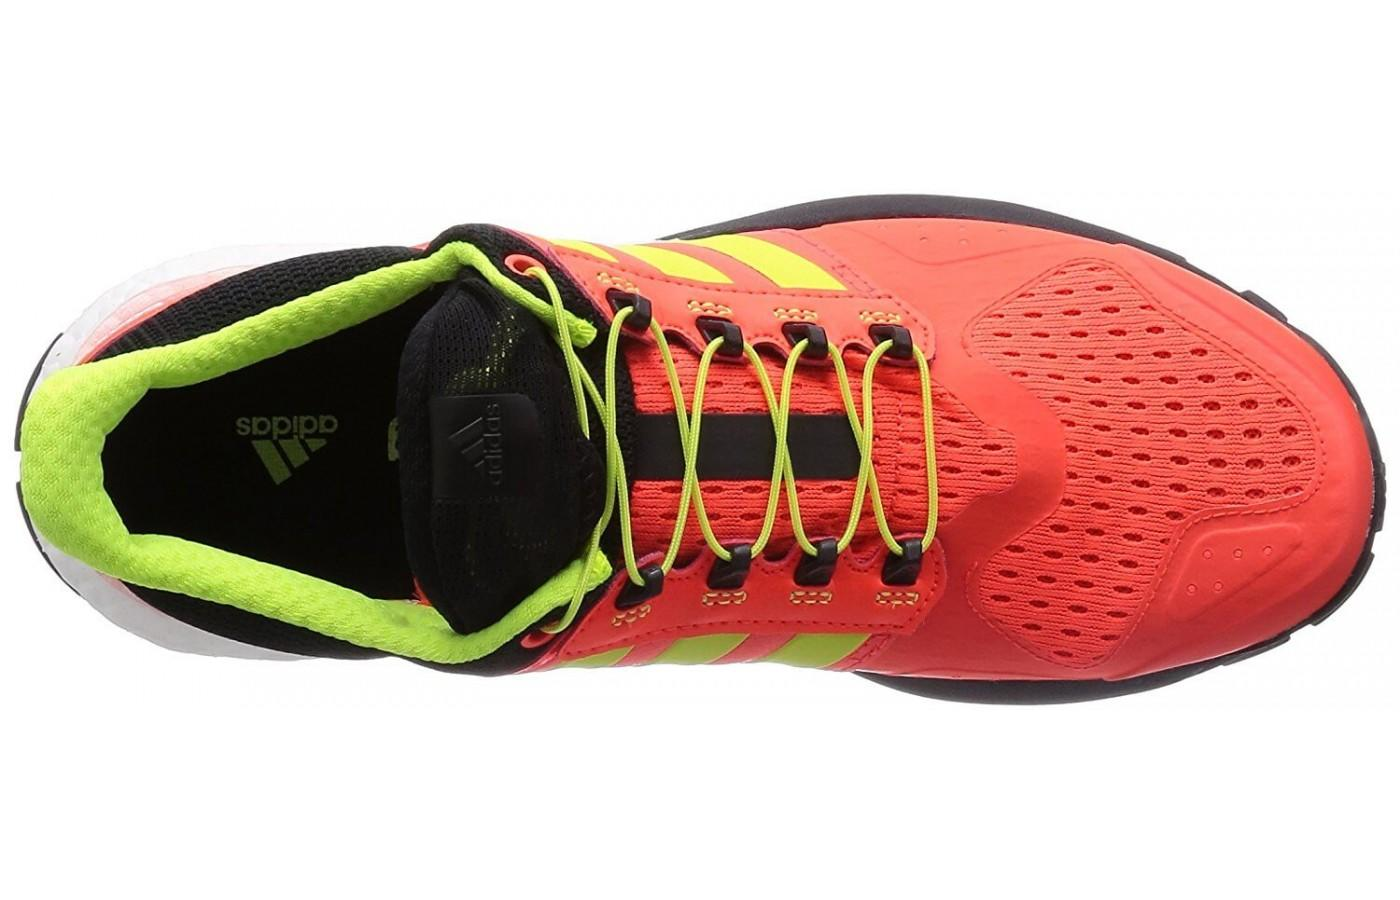 Adidas Adistar Raven has an upper that's breathable and protective